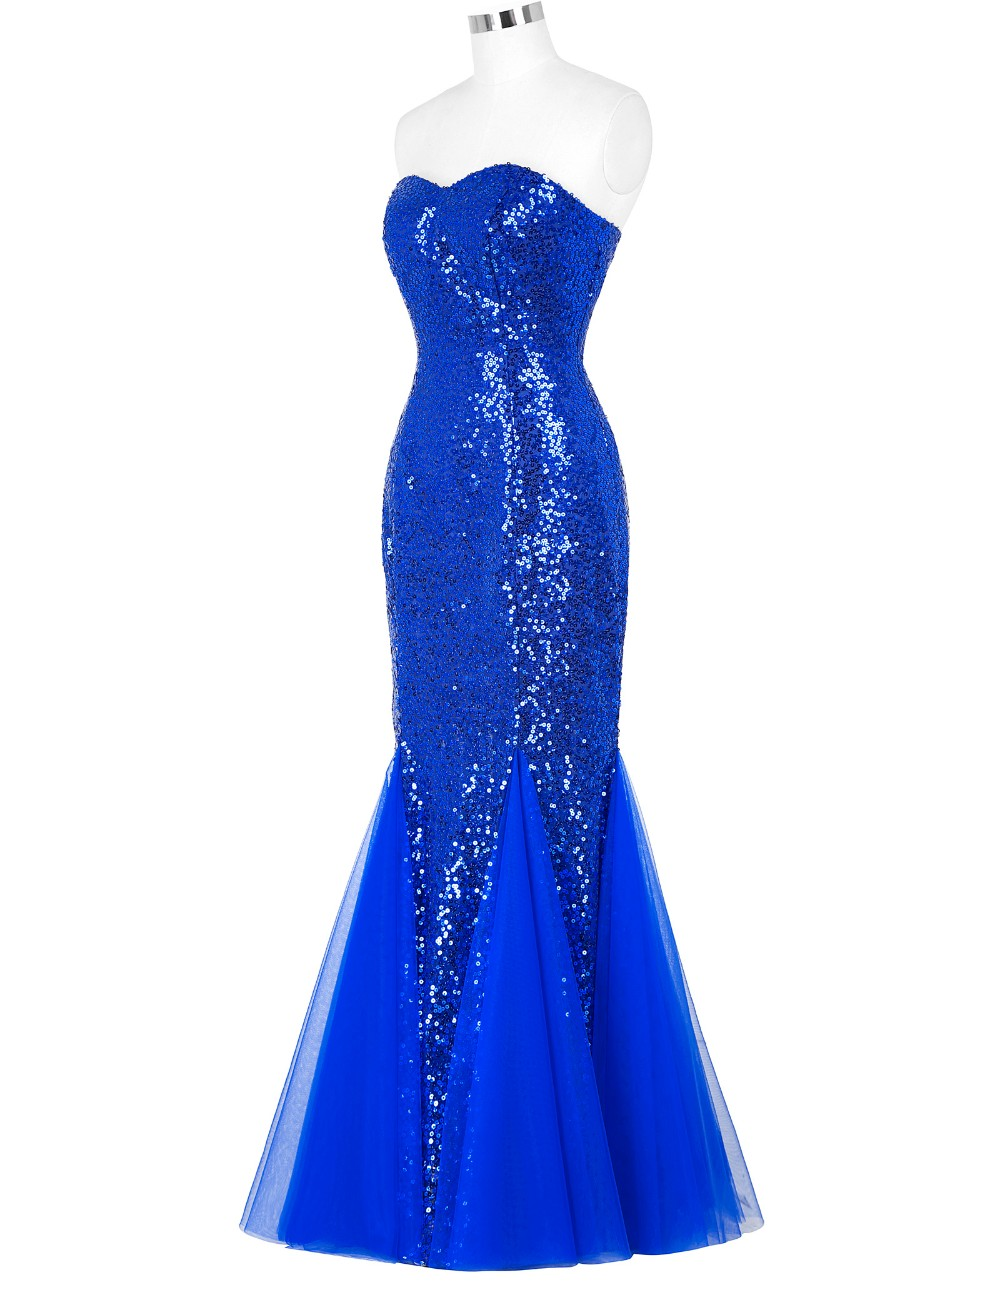 Blue Red White Black Mermaid Prom Dresses Grace Karin Luxury Gold Appliques  Floor Length Party Dress Formal Gowns Prom DressesUSD 60.68 piece 96c6463cf73e